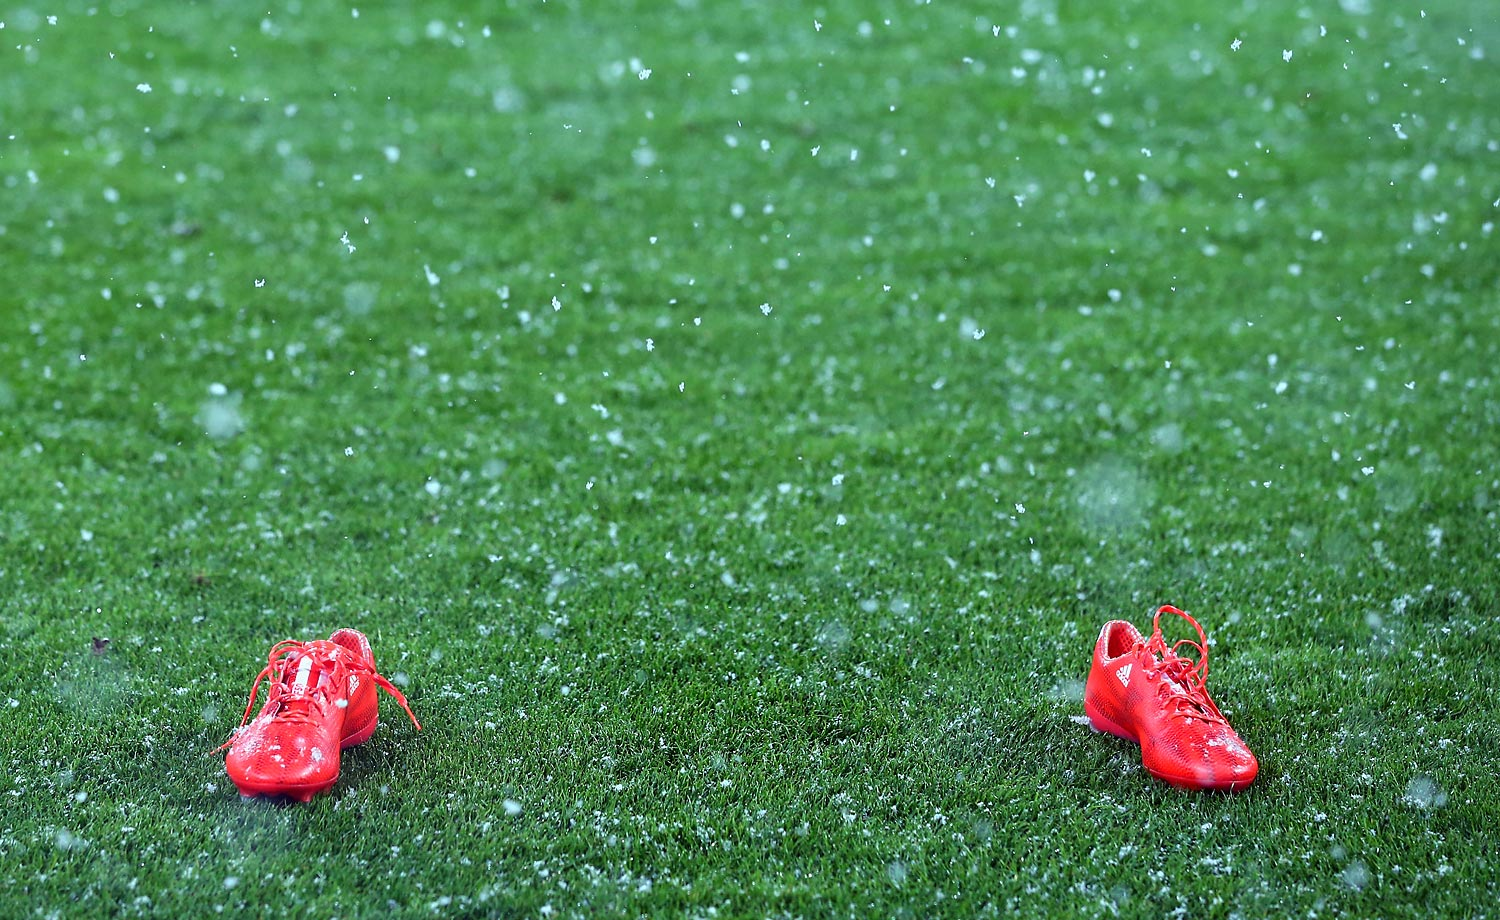 A pair of soccer cleats alone prior to the Bundesliga match between FC Augsburg and 1899 Hoffenheim.